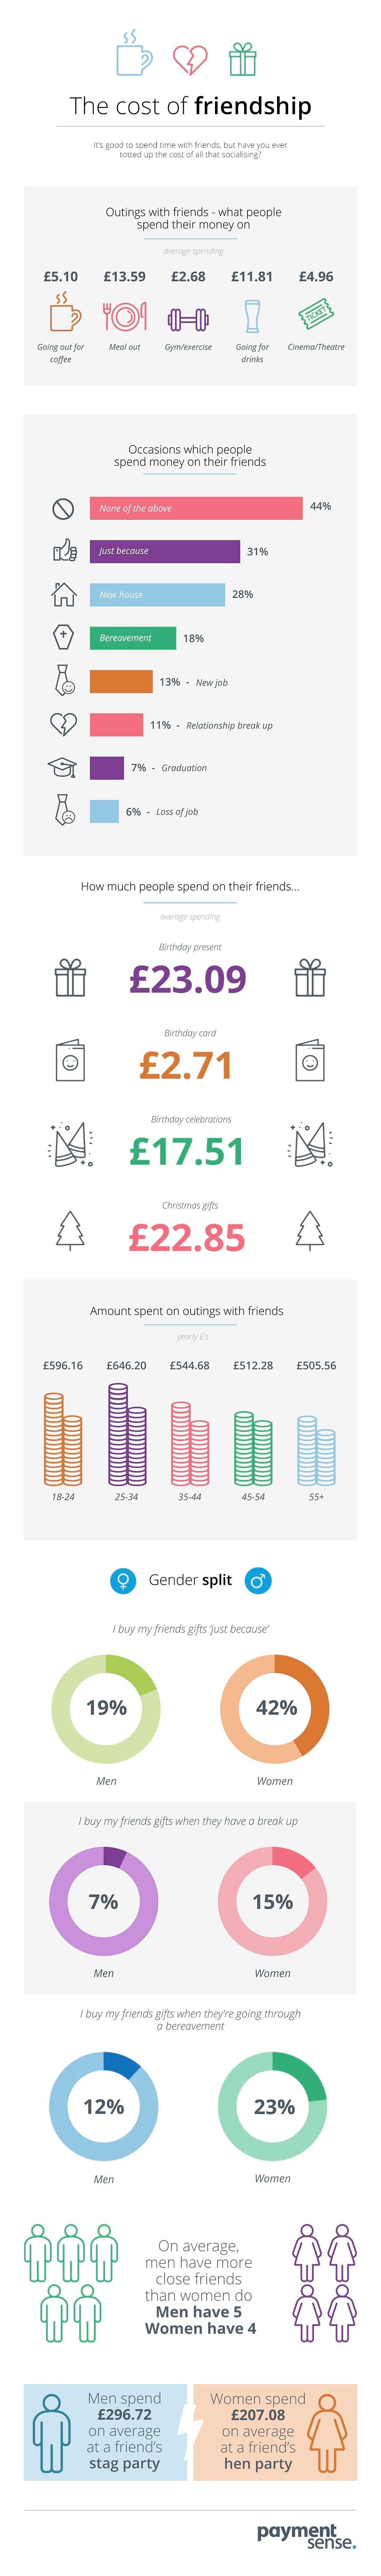 Cost of Friendship Infographic